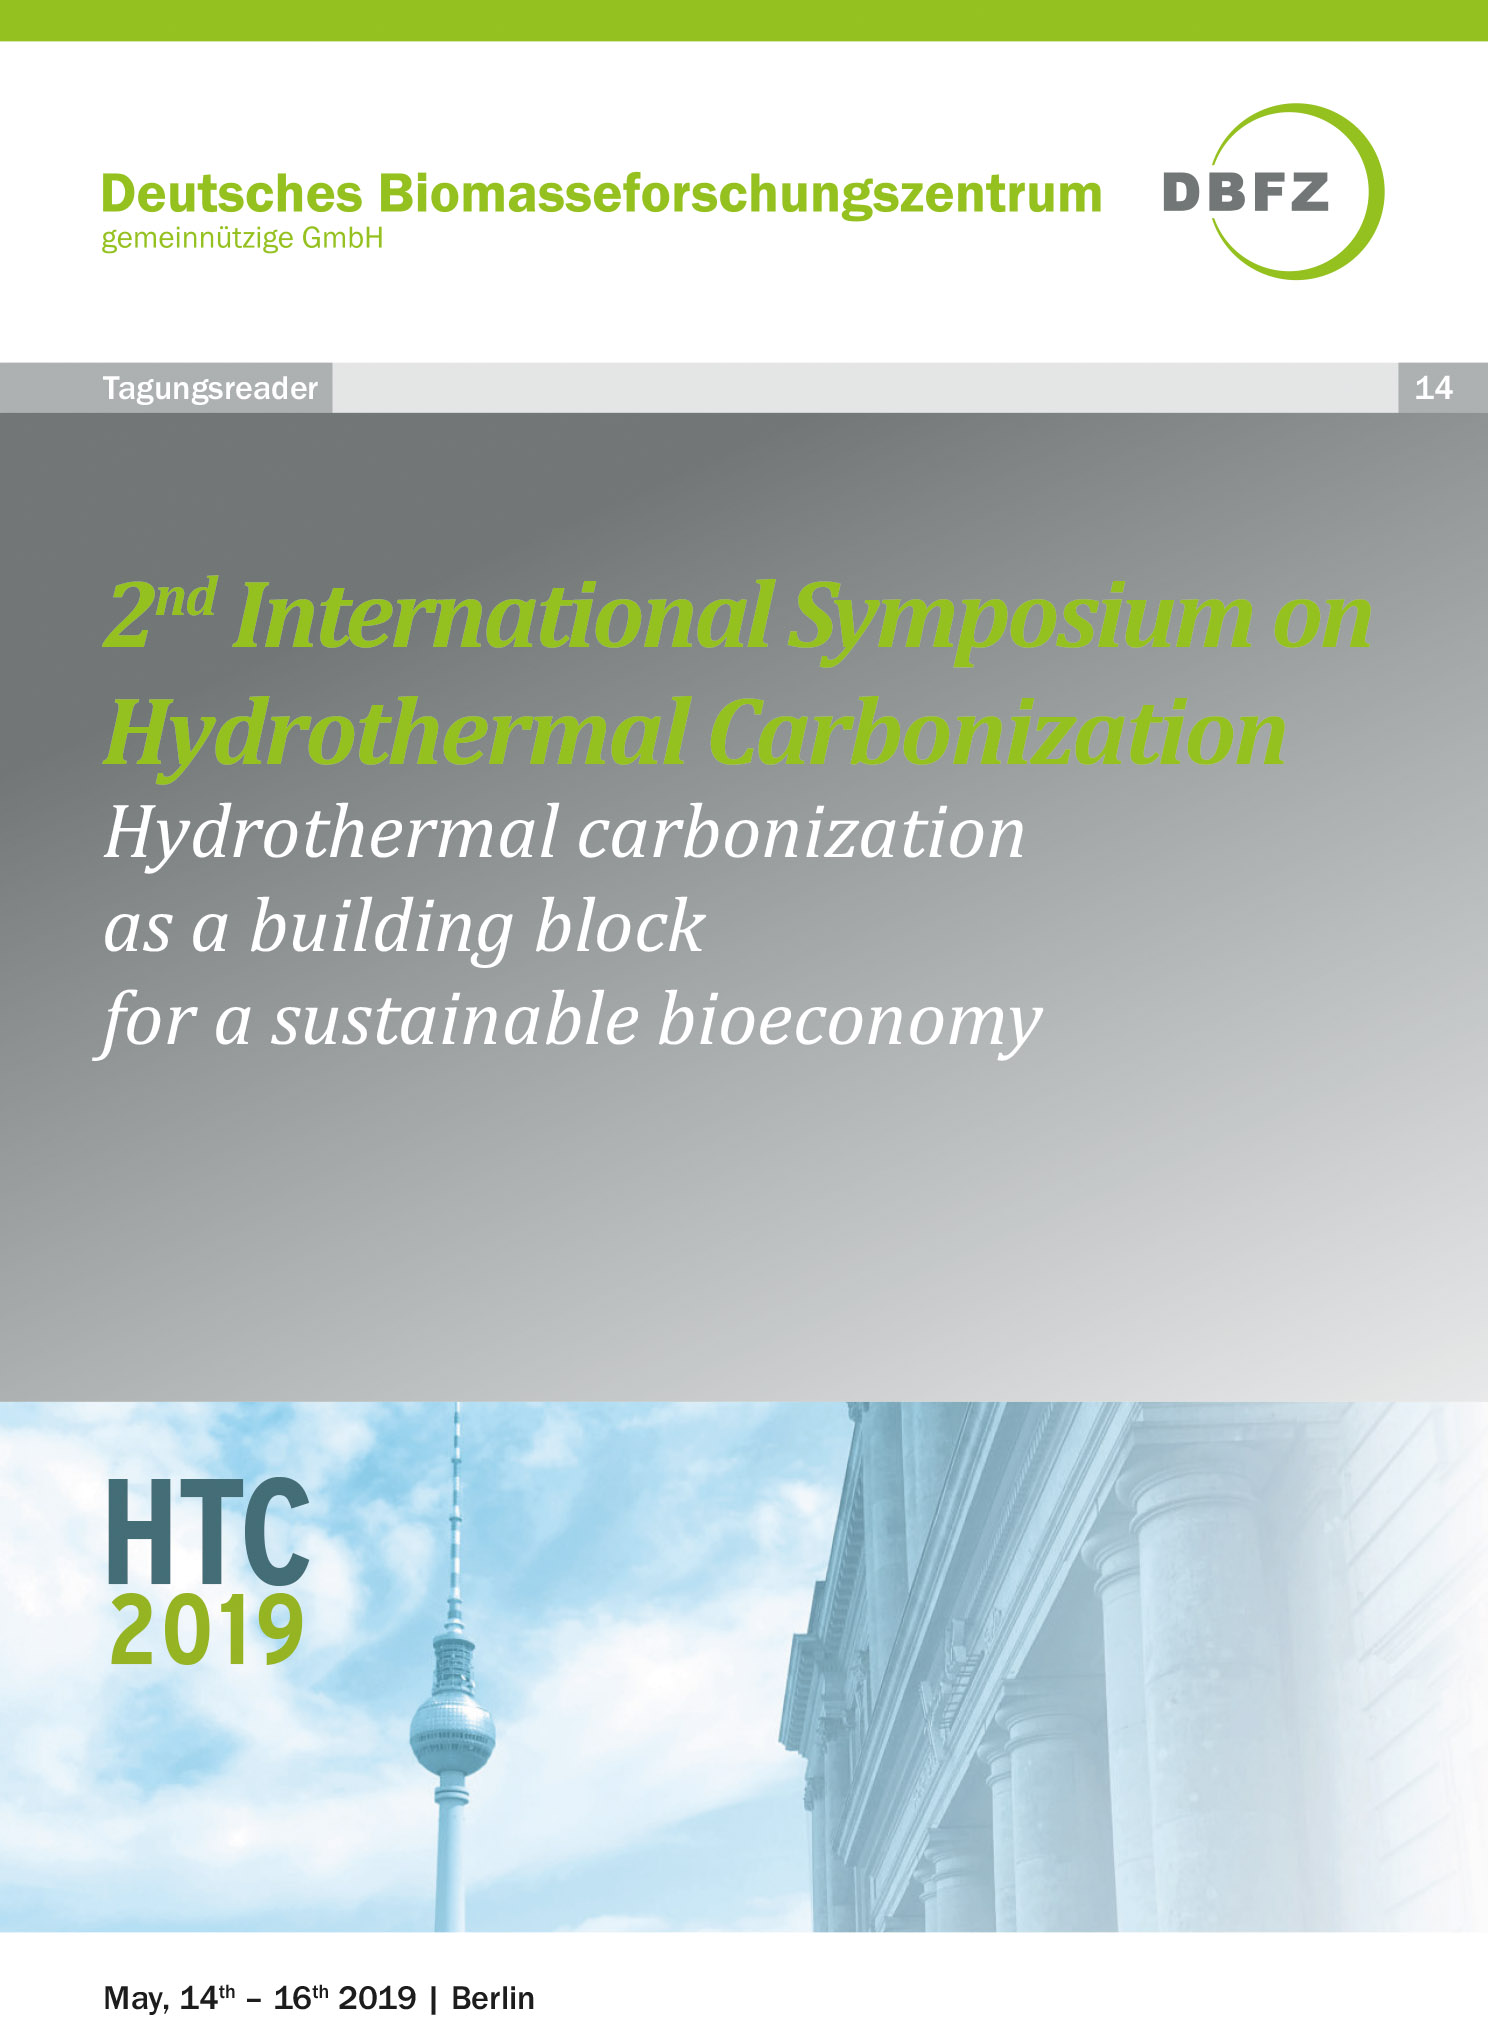 2nd International Symposium on Hydrothermal Carbonization